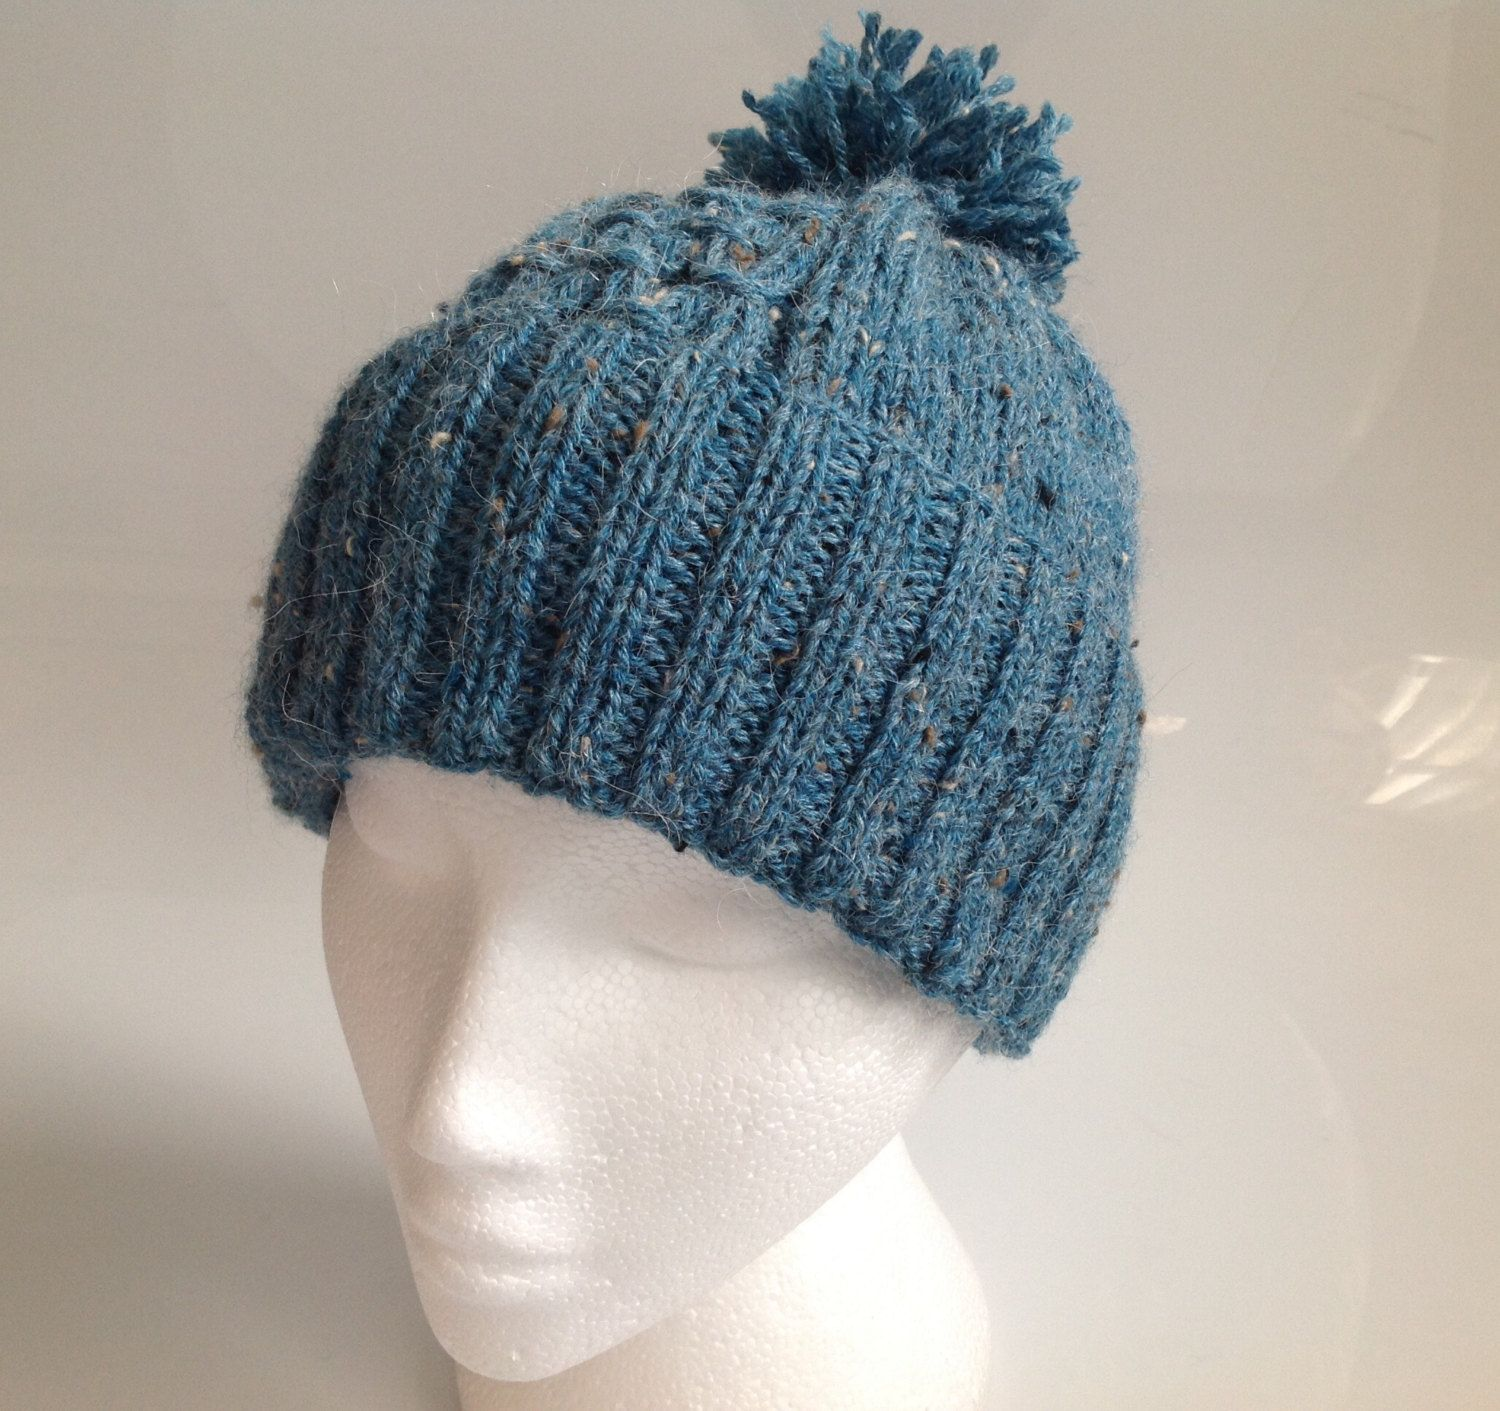 833193db Ladies Teal Alpaca Tweed Knitted Pom Pom Beanie Hand Knitted in Scotland by  sewmoira on Etsy